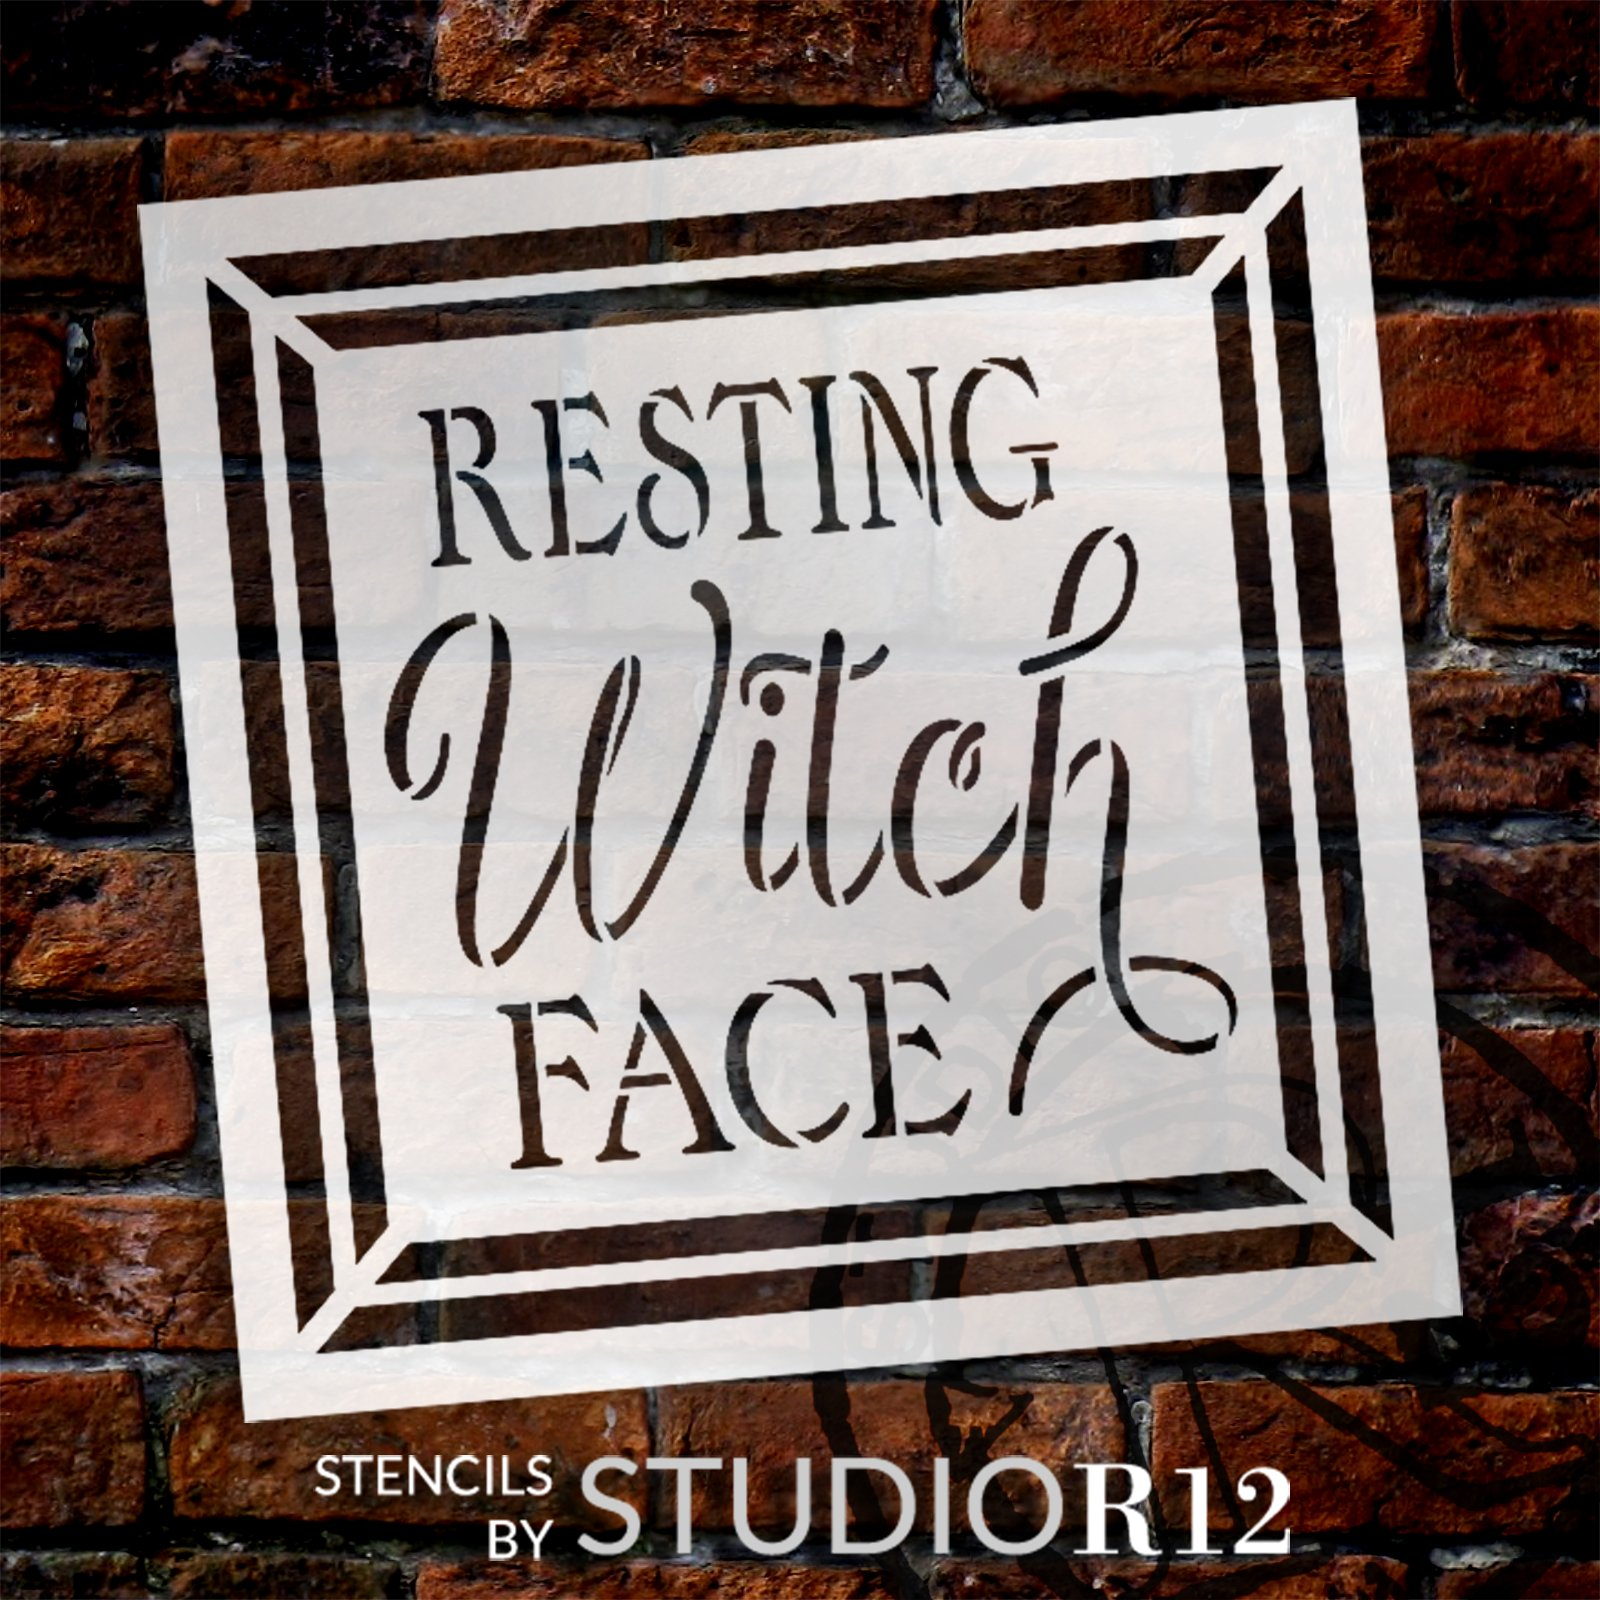 Resting Witch Face Stencil by StudioR12 | Craft DIY Autumn Halloween Home Decor | Paint Fall Wood Sign | Reusable Mylar Template | Select Size